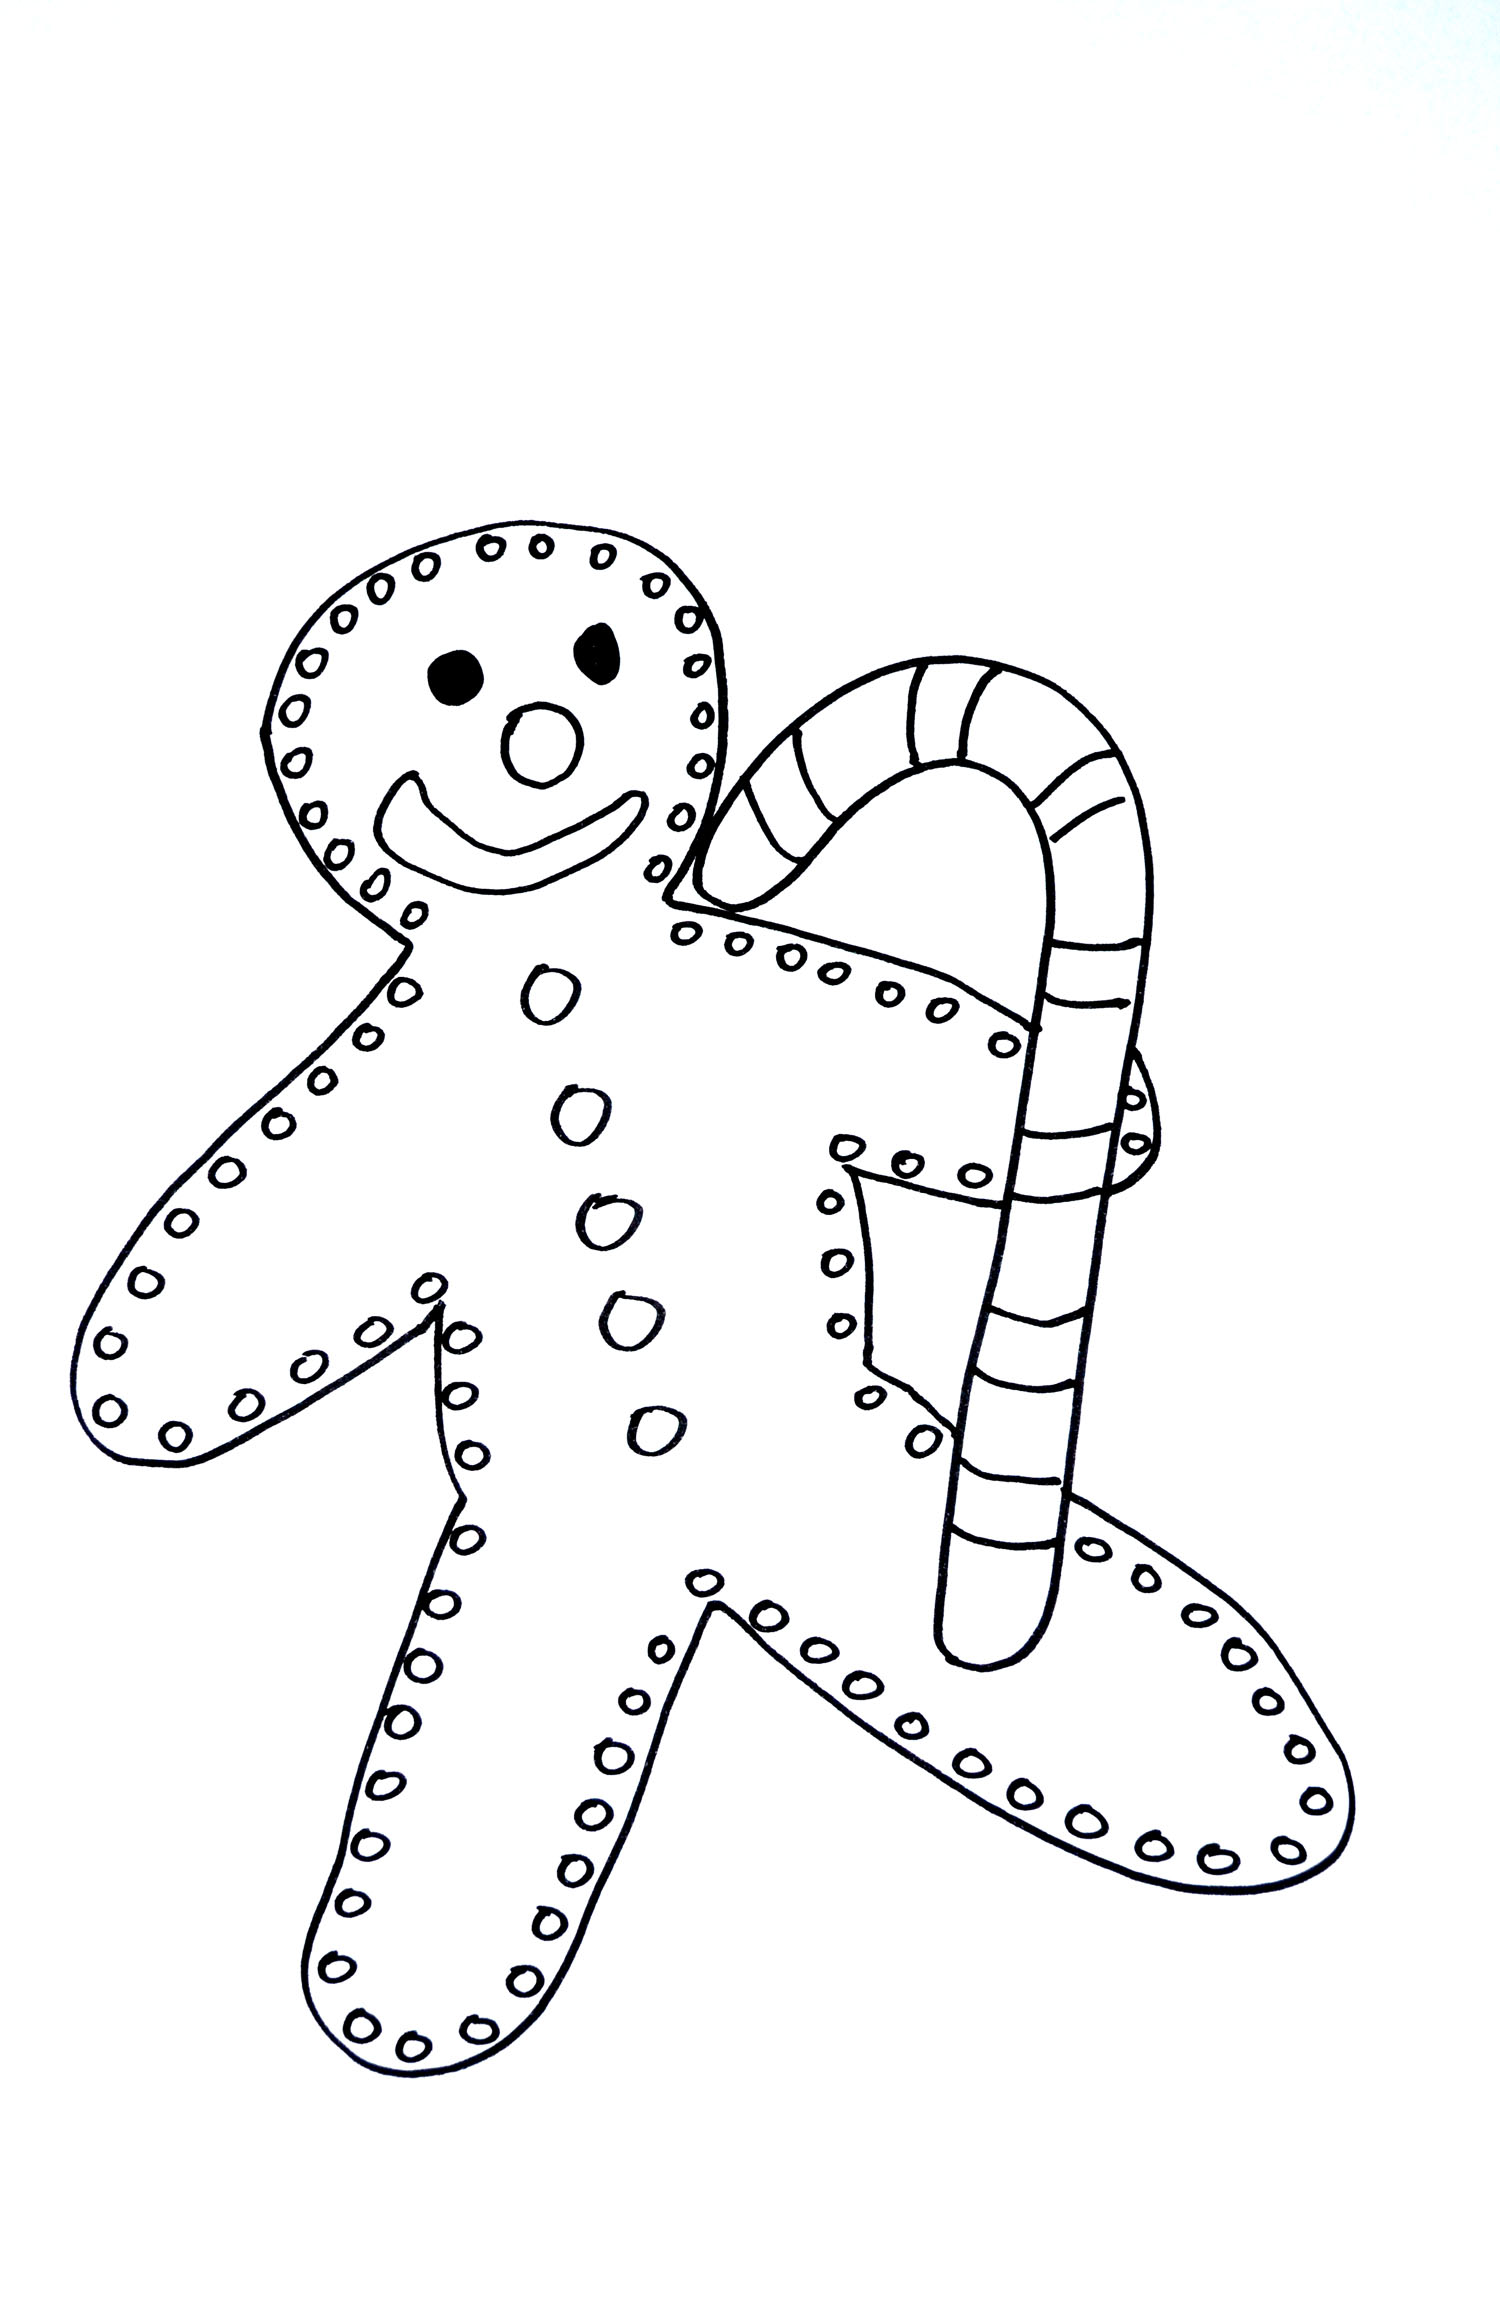 Gingerbread Man Christmas Coloring Pages For Kids To